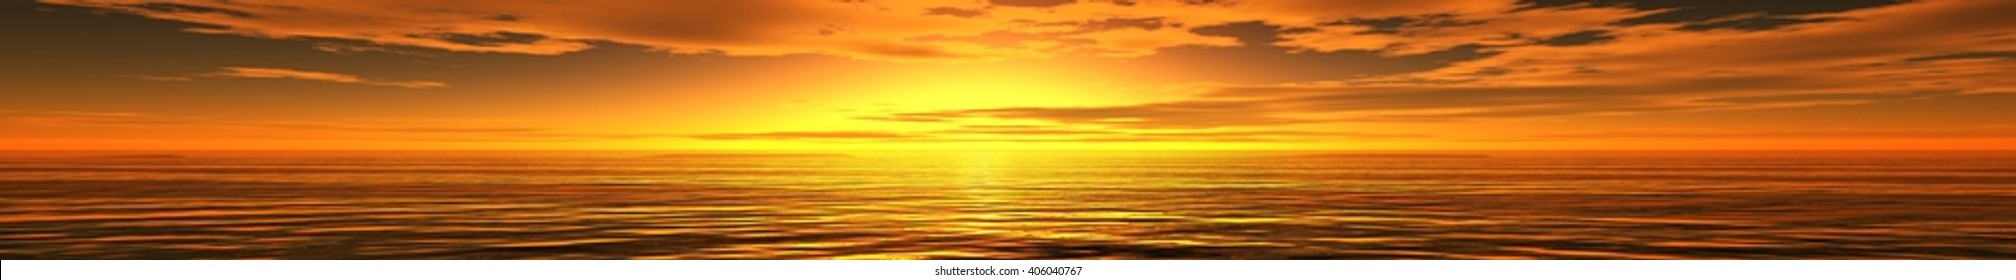 panoramic sunset sea landscape, ocean sunrise, the light in the sky over the sea, the sun over the water, 3D rendering